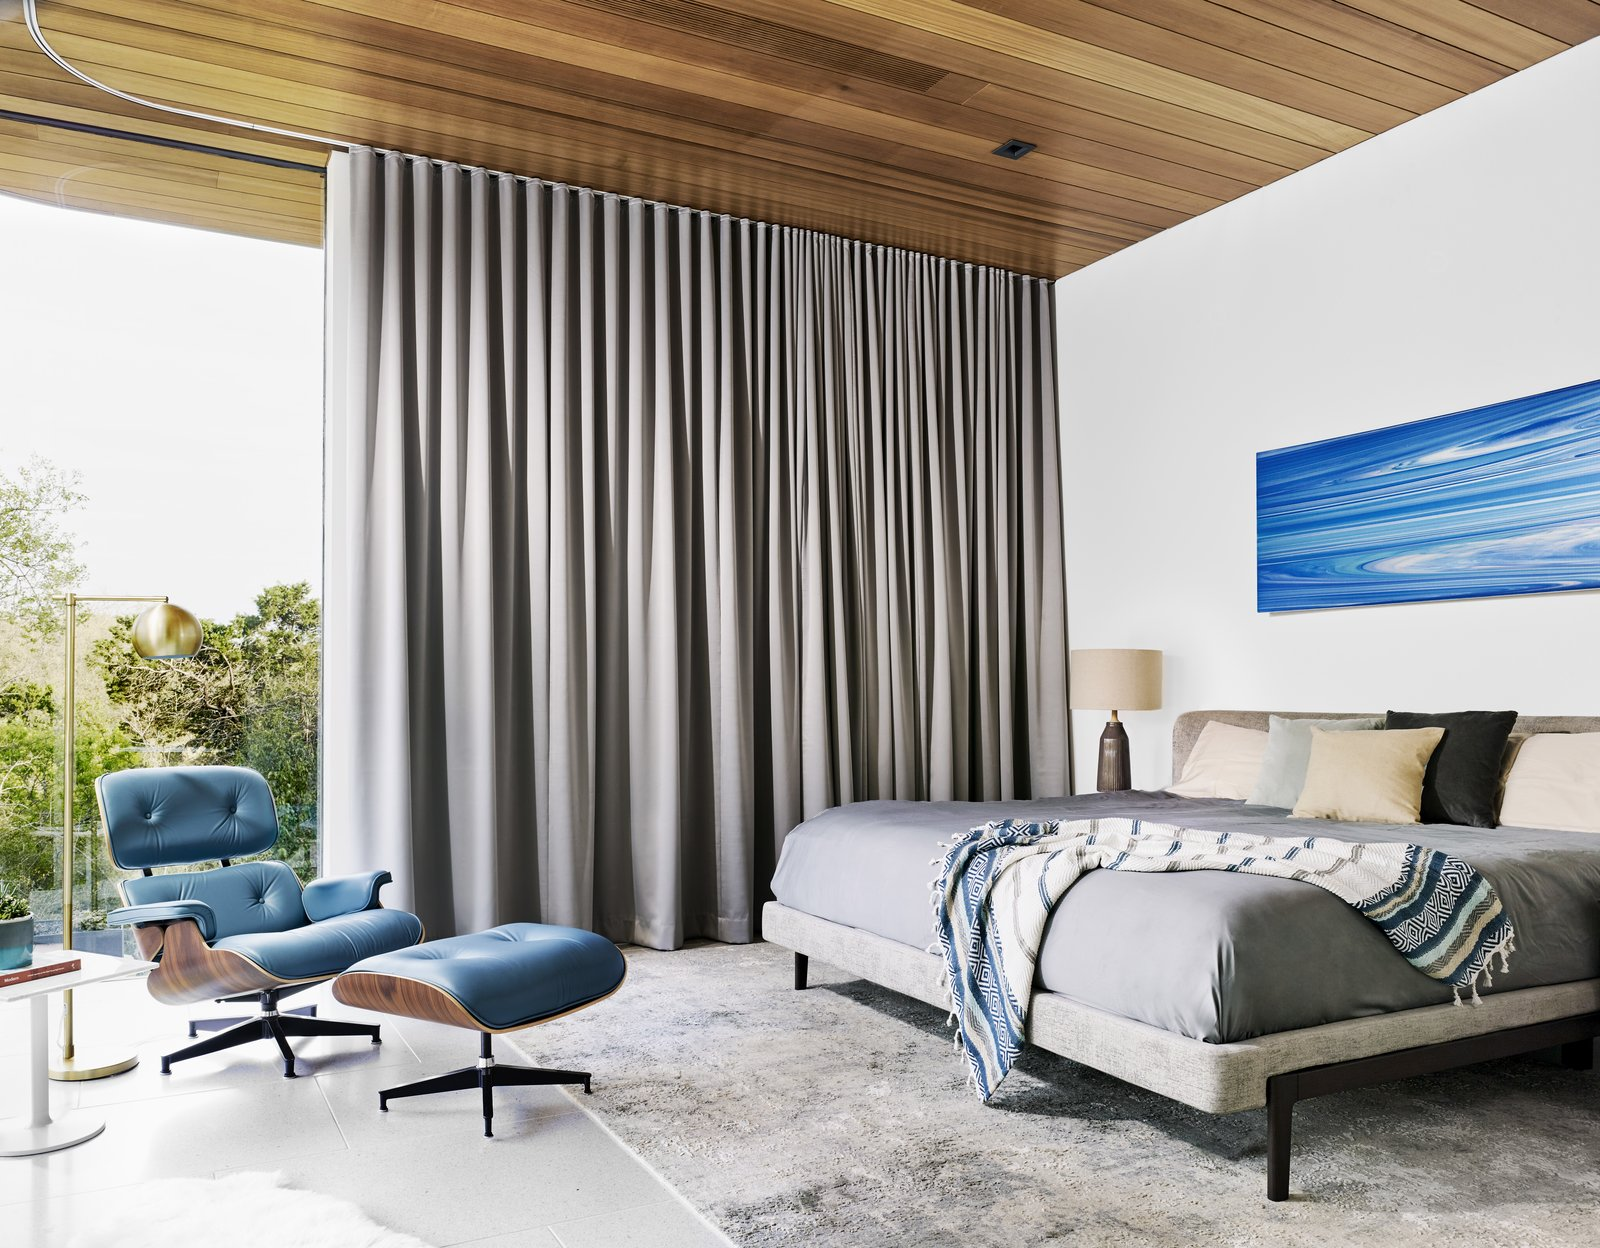 Drapes by Cush Cush Design offer privacy in the master bedroom. An Andy Moses painting hangs above the bed.